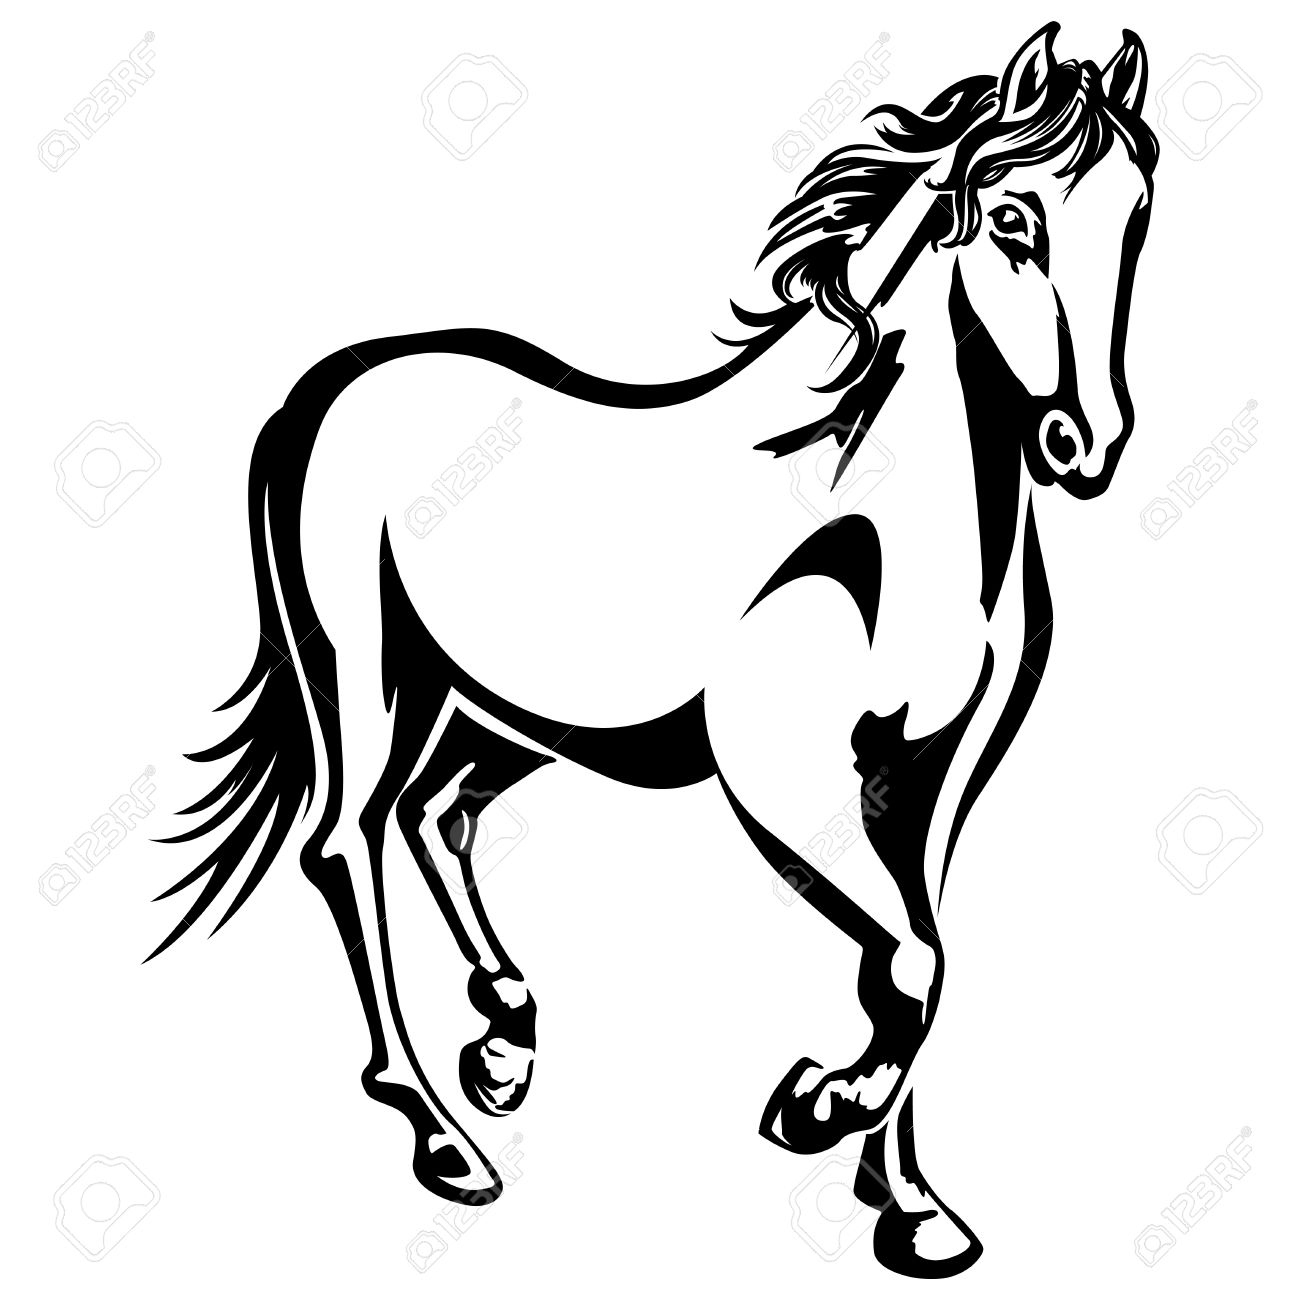 1300x1300 The Horse Is Running Black And White Drawing Silhouette Royalty